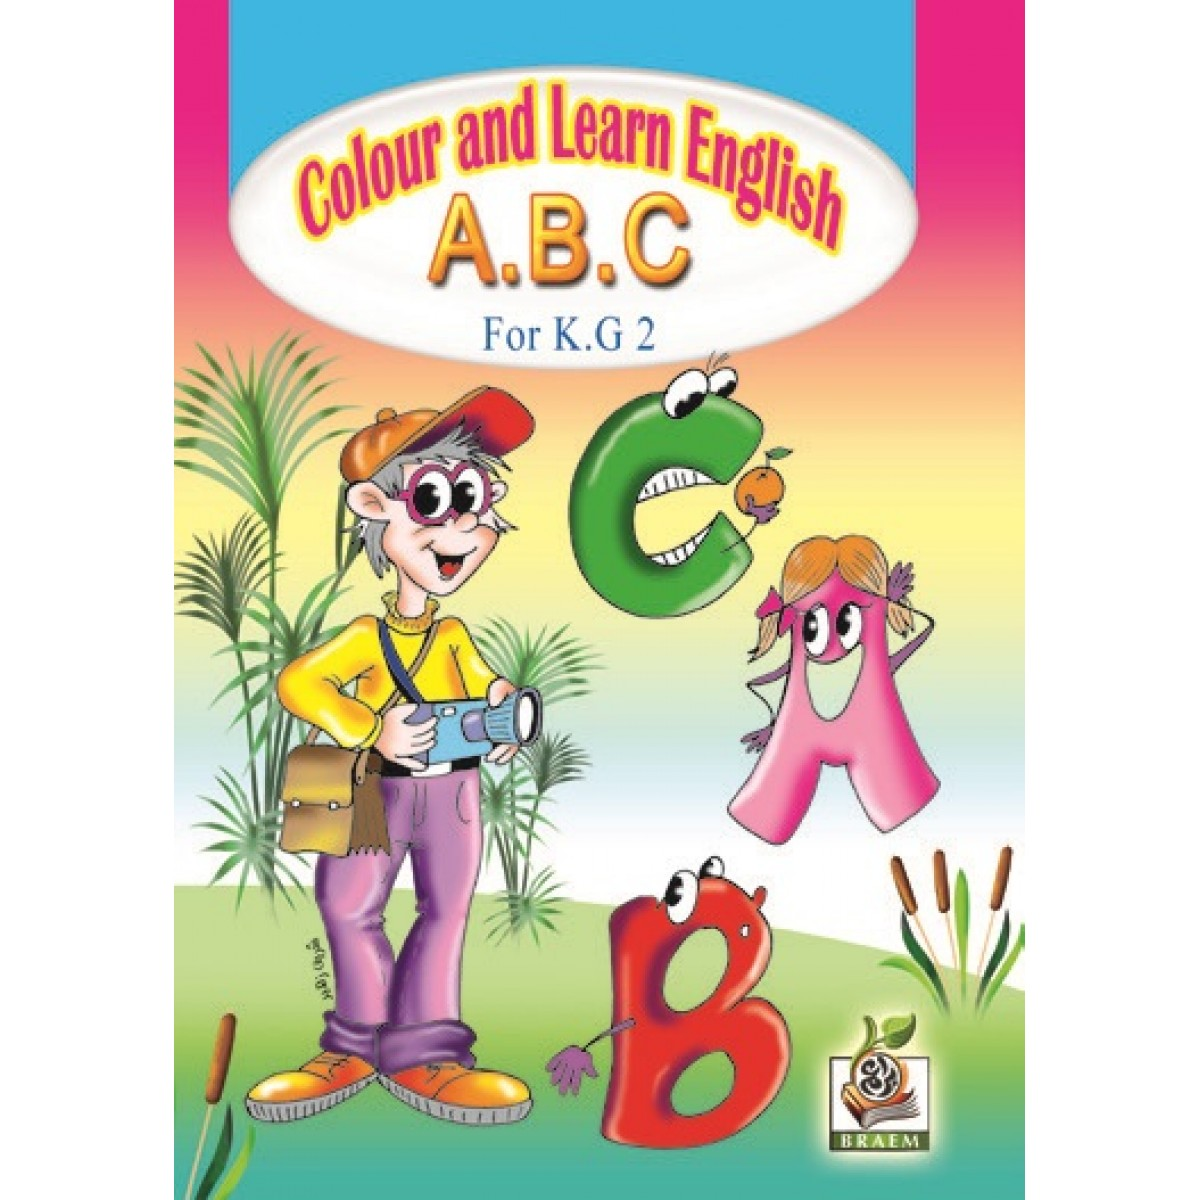 Colour and learn English A.B.C مستوى  K.G.2